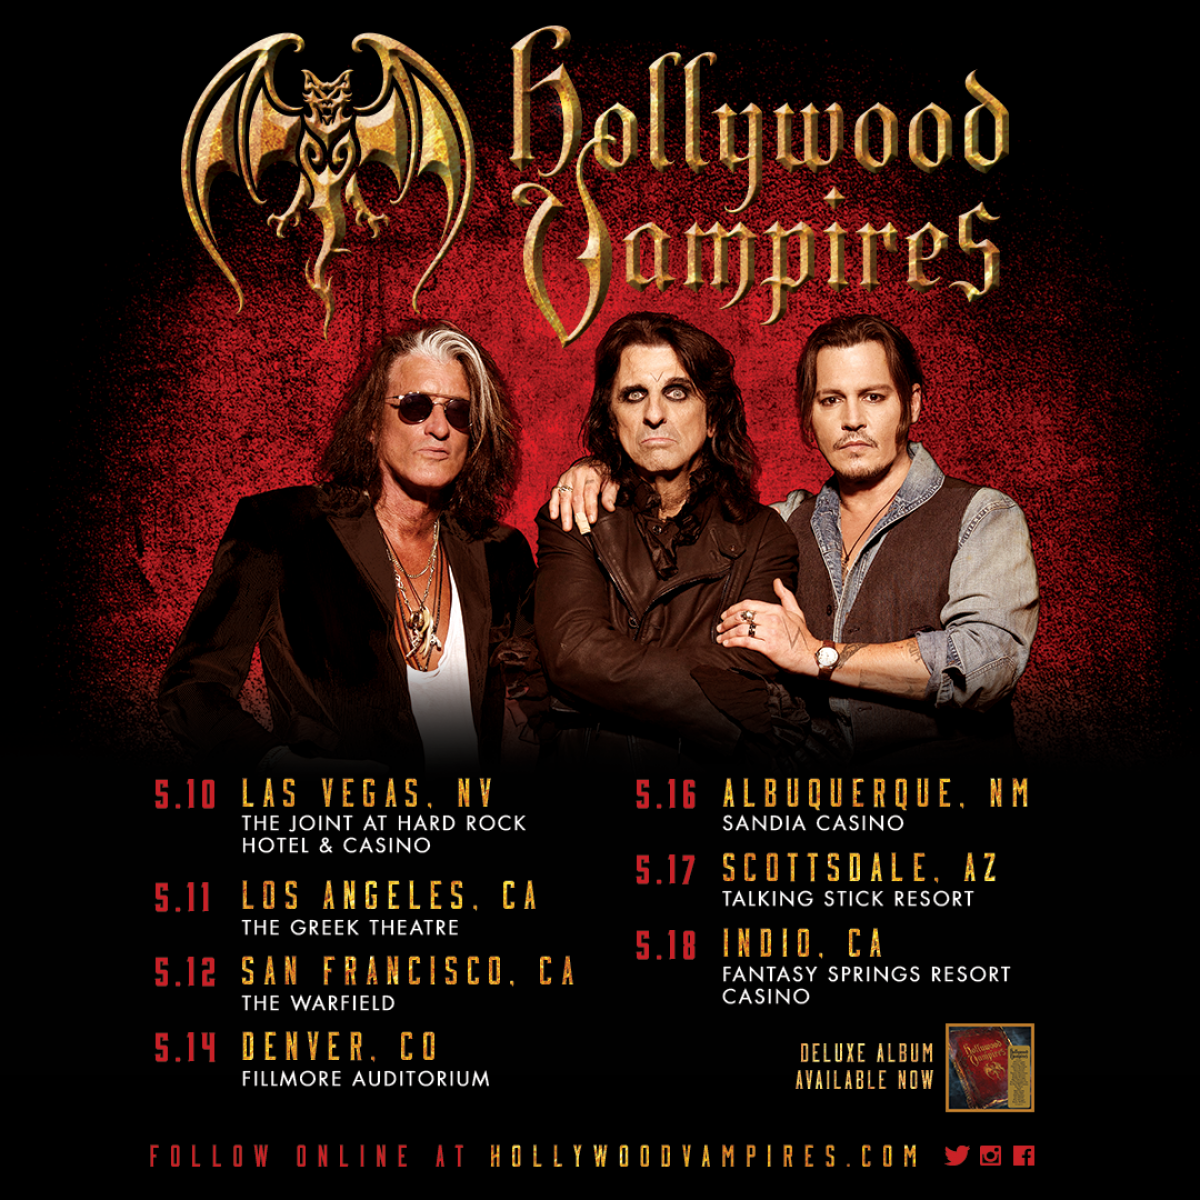 Hollywood Vampires Tour 2020 Hollywood Vampires | News